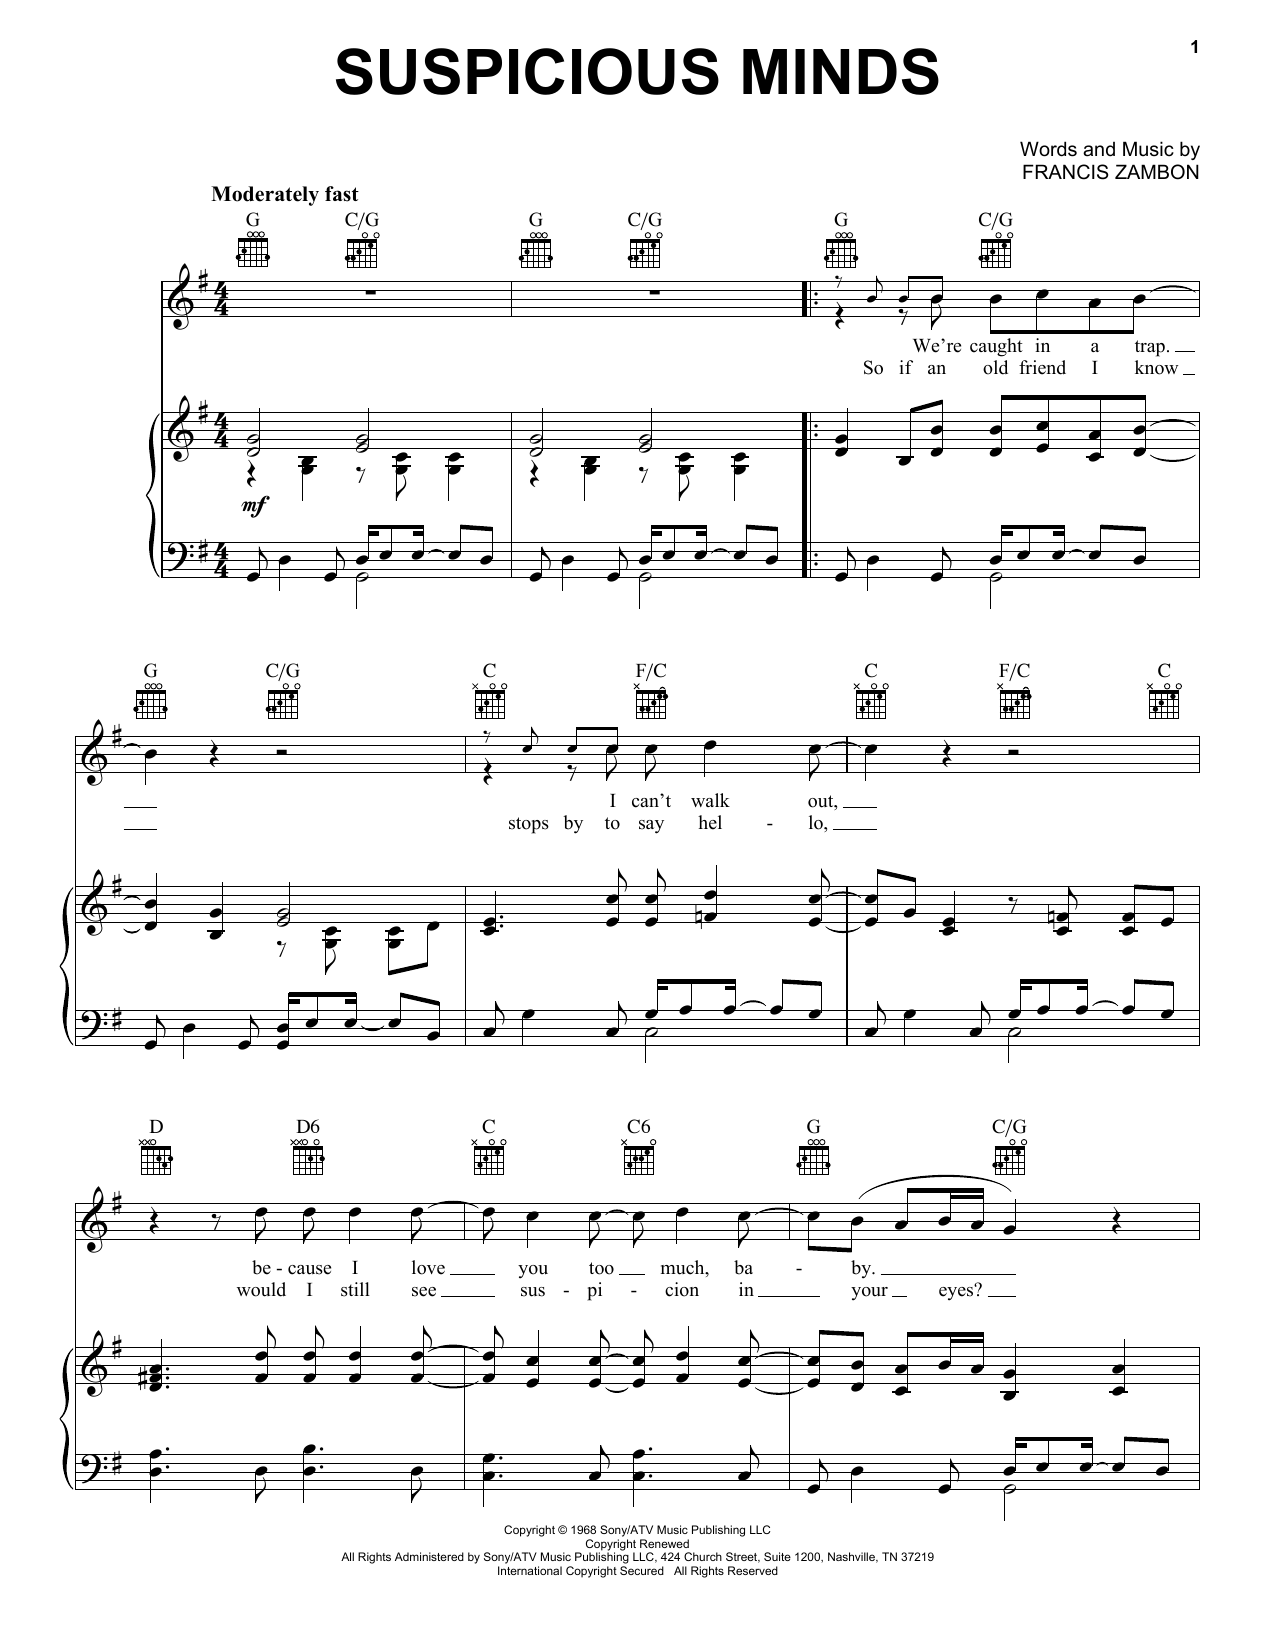 Elvis Presley Suspicious Minds sheet music notes and chords. Download Printable PDF.